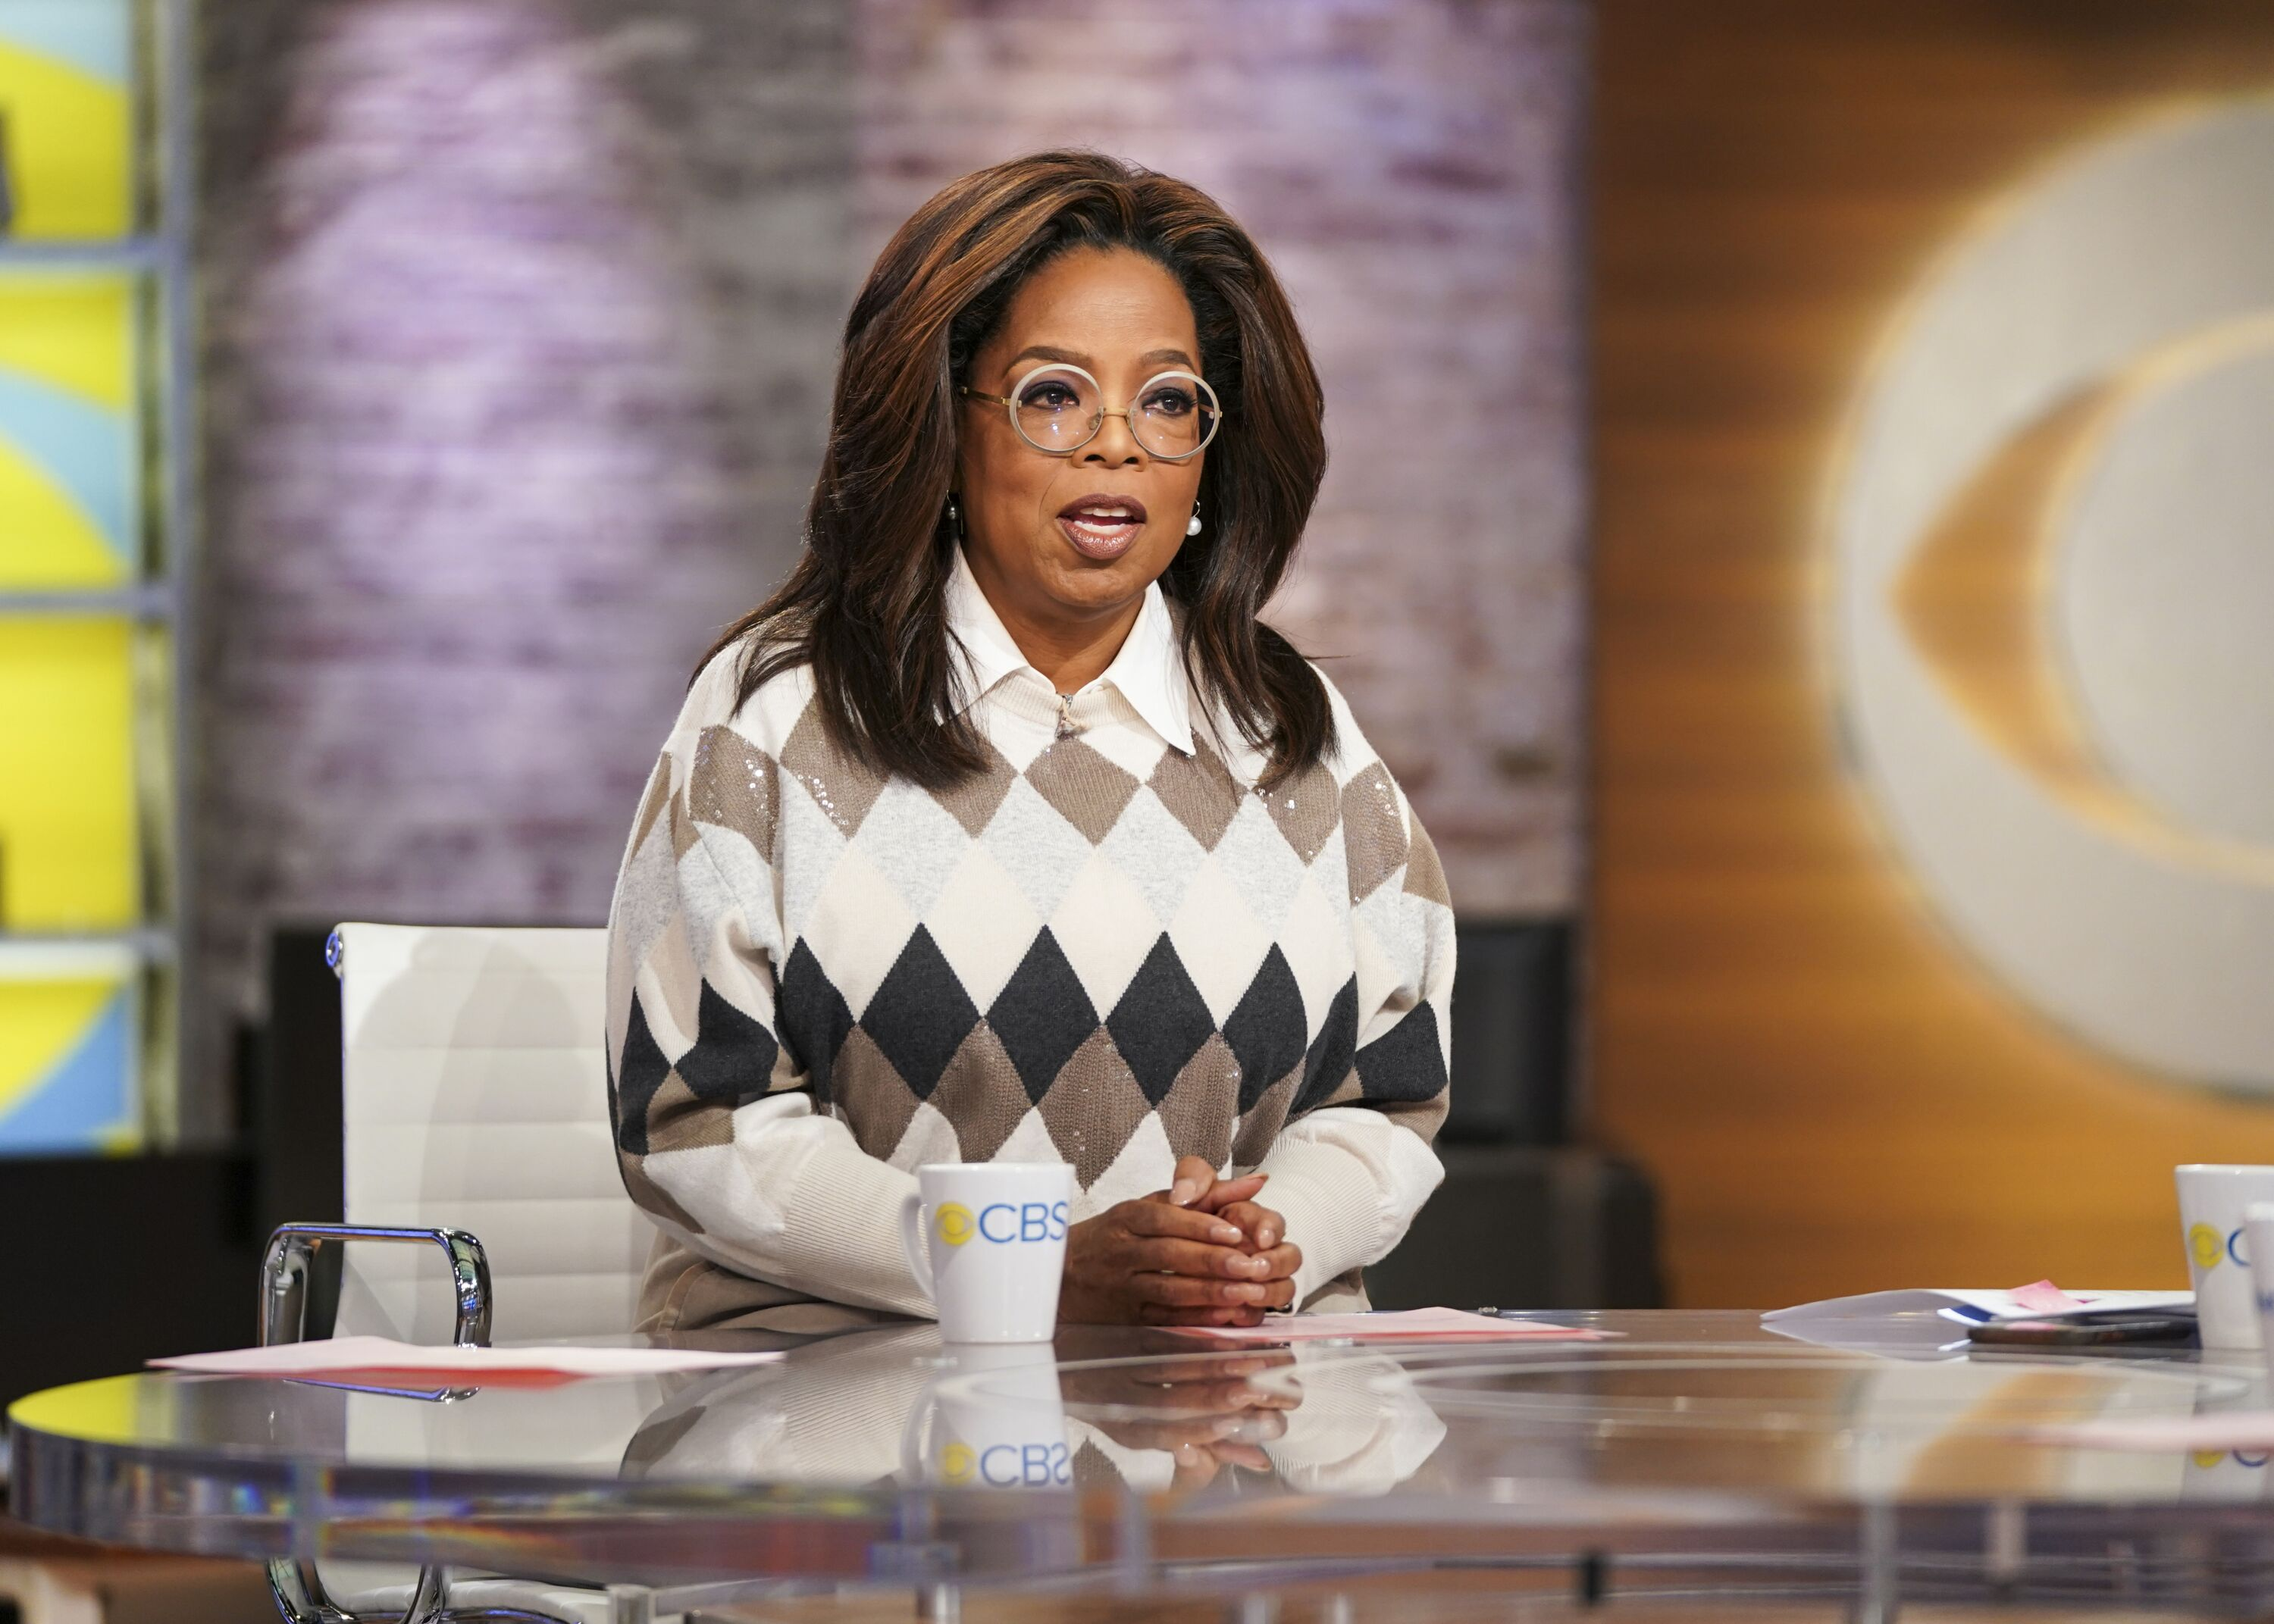 Oprah Winfrey at the CBS studios for a TV guesting   Source: Getty Images/GlobalImagesUkraine